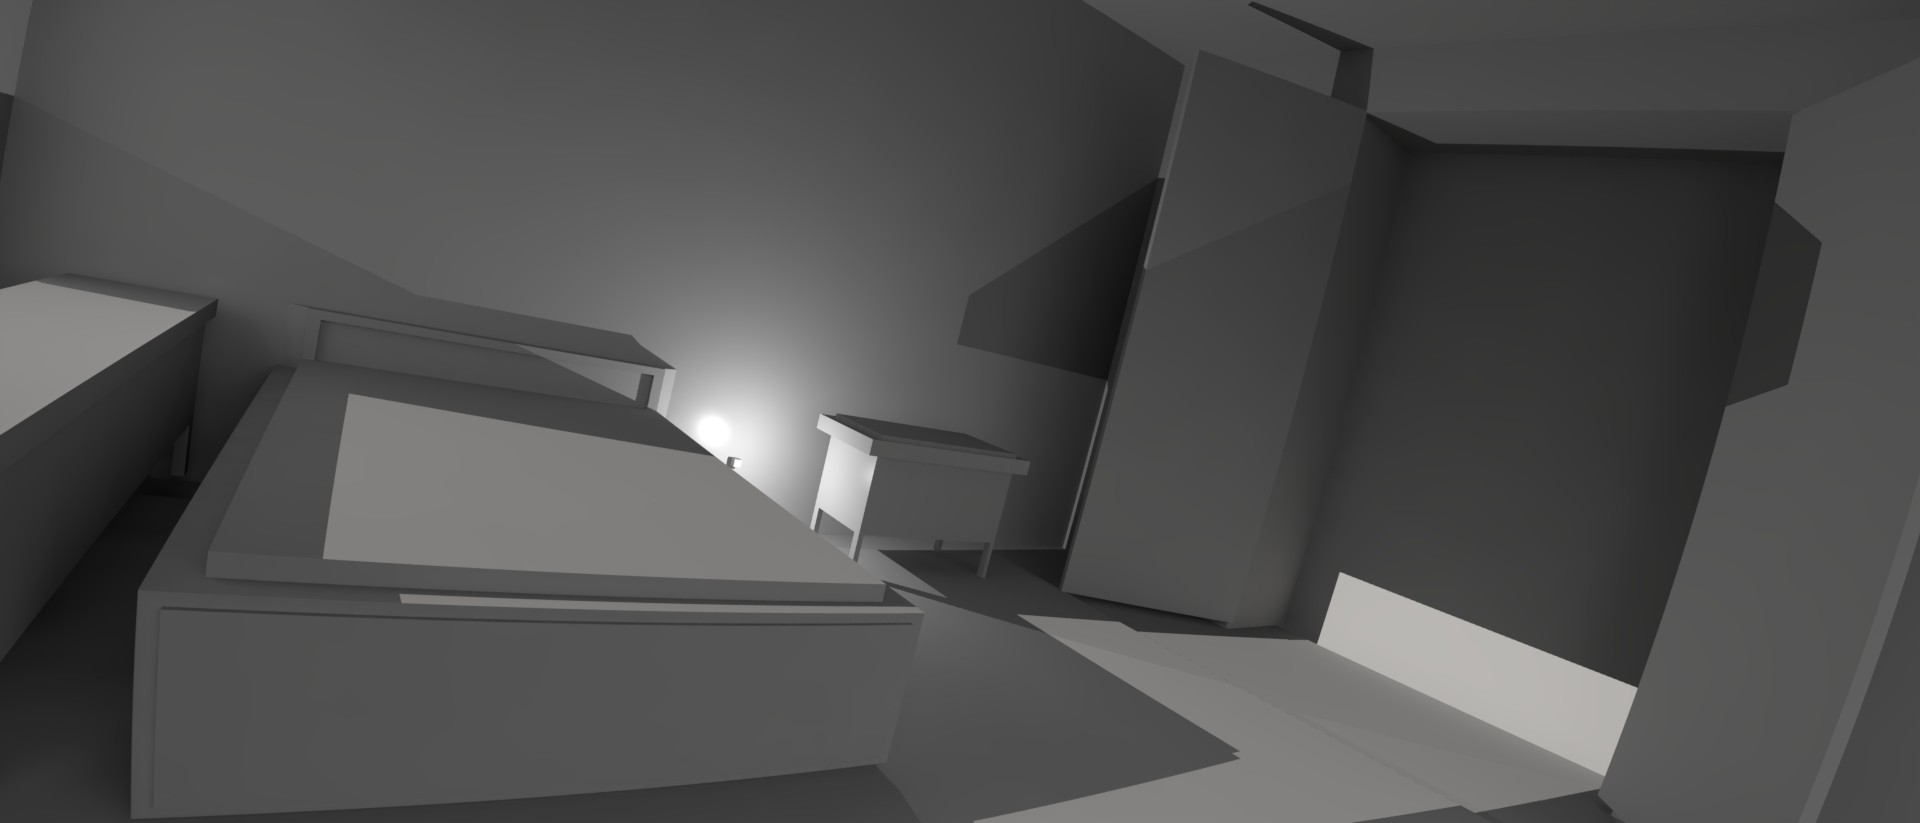 the room was created using only simple geomtrys in modo.